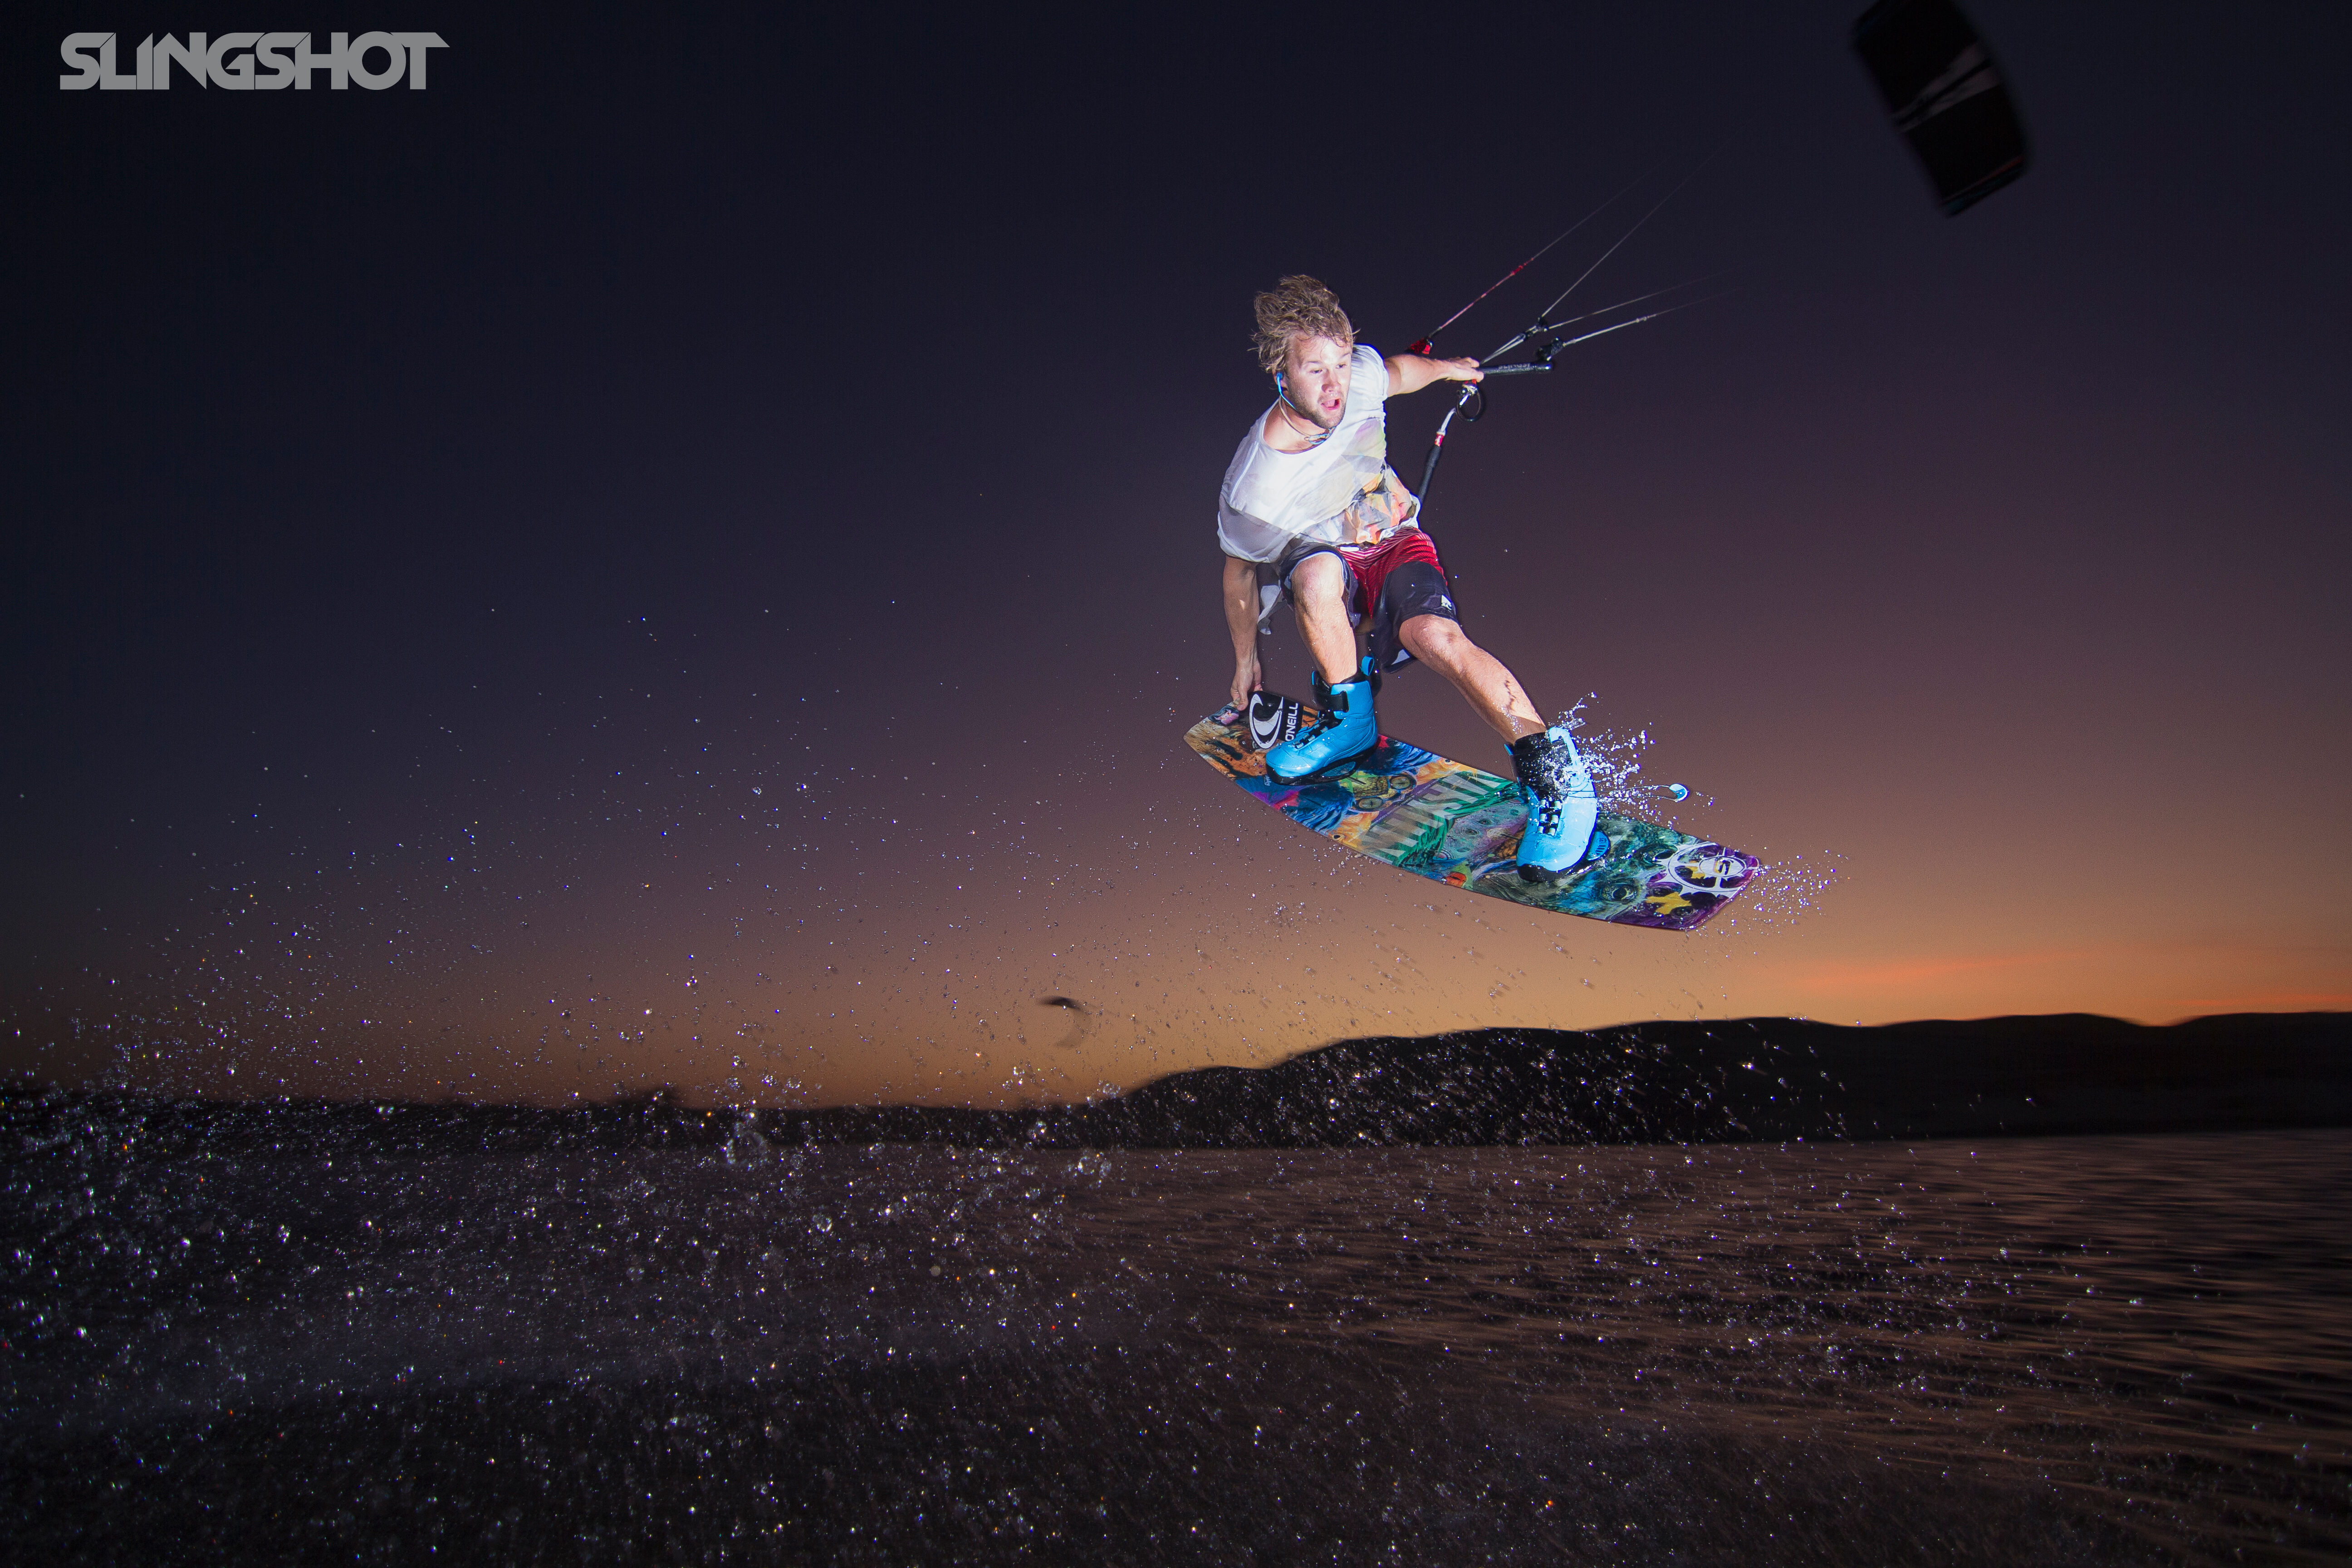 kitesurf wallpaper image - Sam Light feeling his way around in the dark on the 2015 Slingshot Vision board and Fuel - in resolution: Original 5184 X 3456